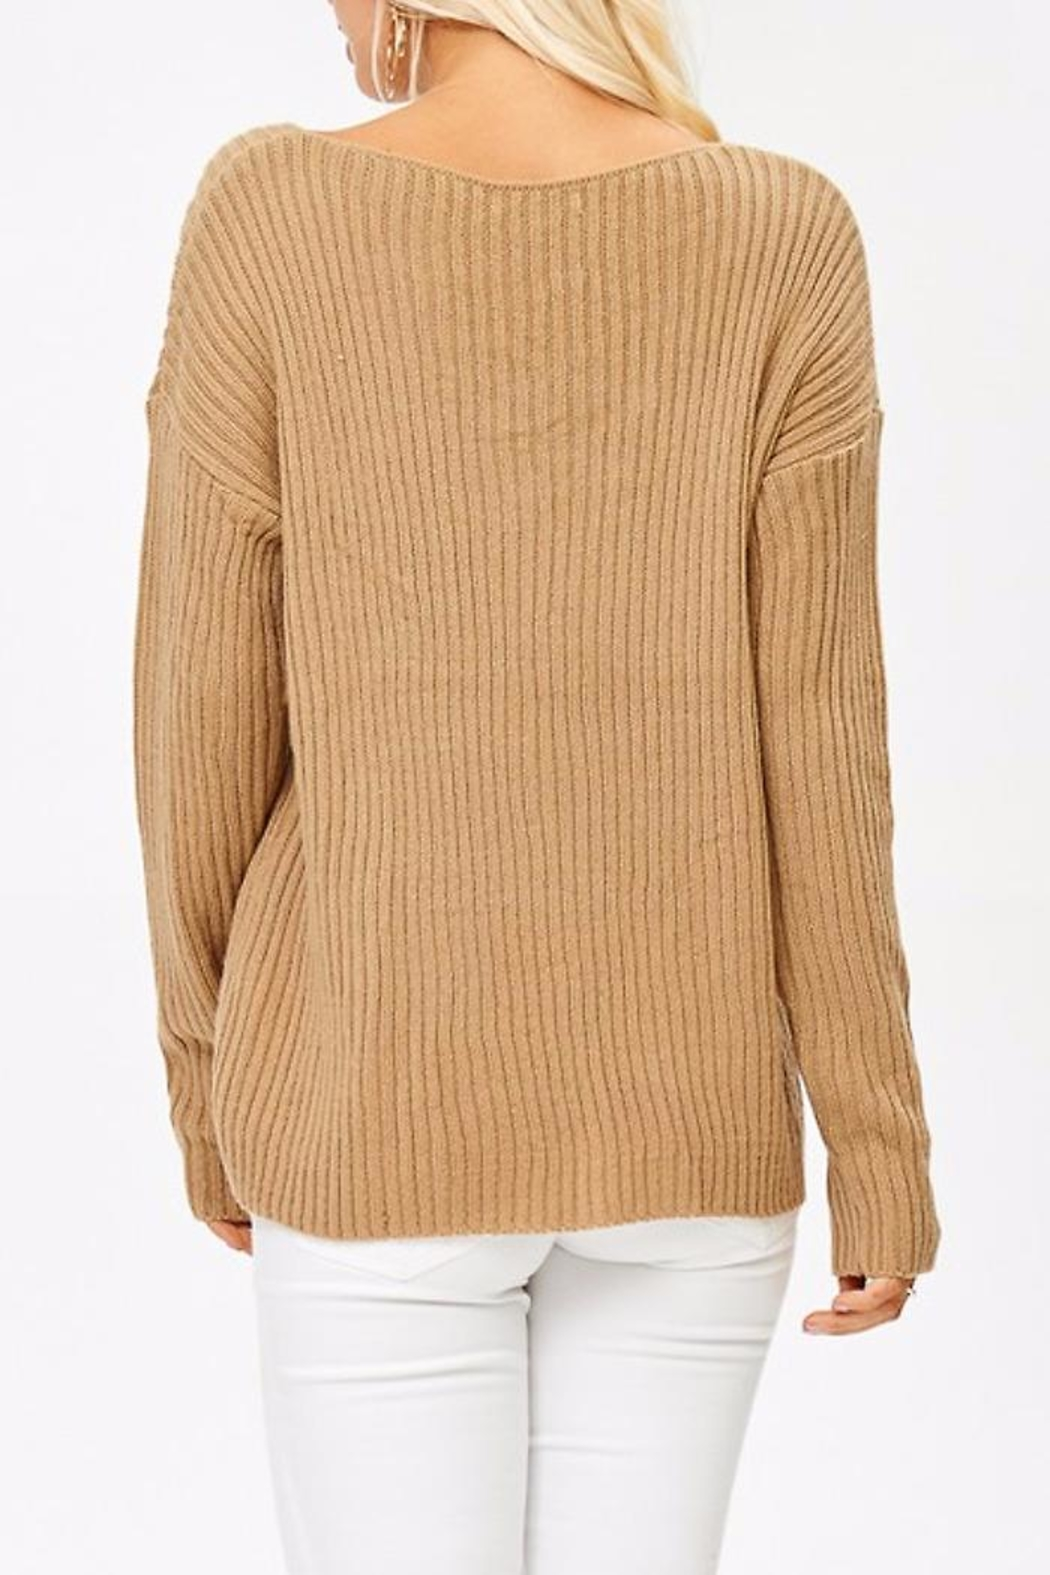 People Outfitter Caramel Sweater - Front Full Image